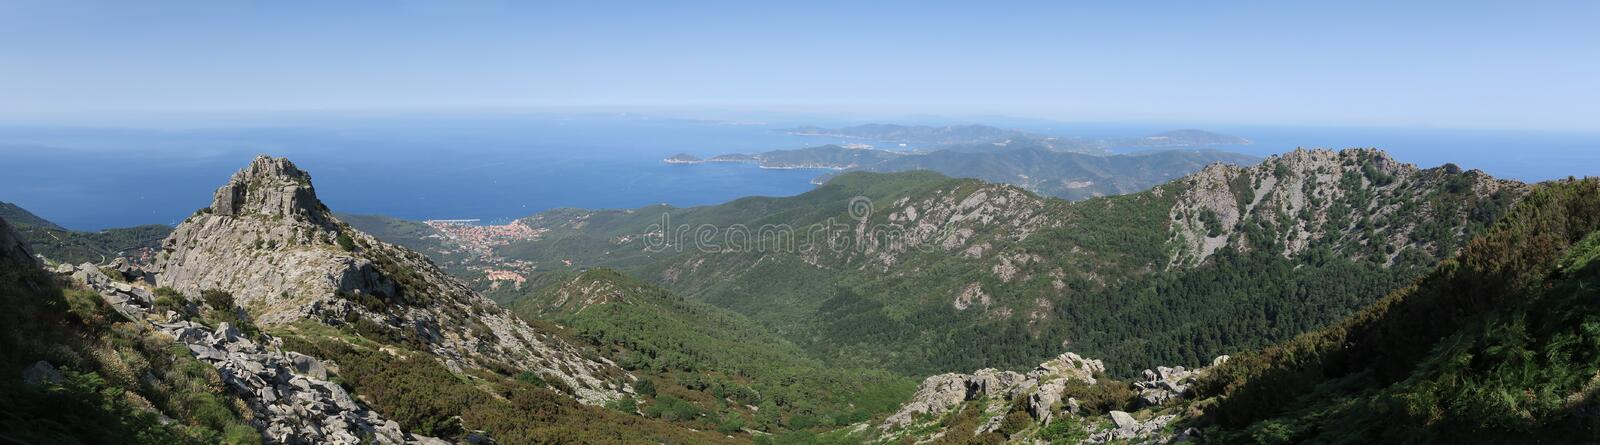 East view from the top of Monte Capanne on the island Elba royalty free stock photography